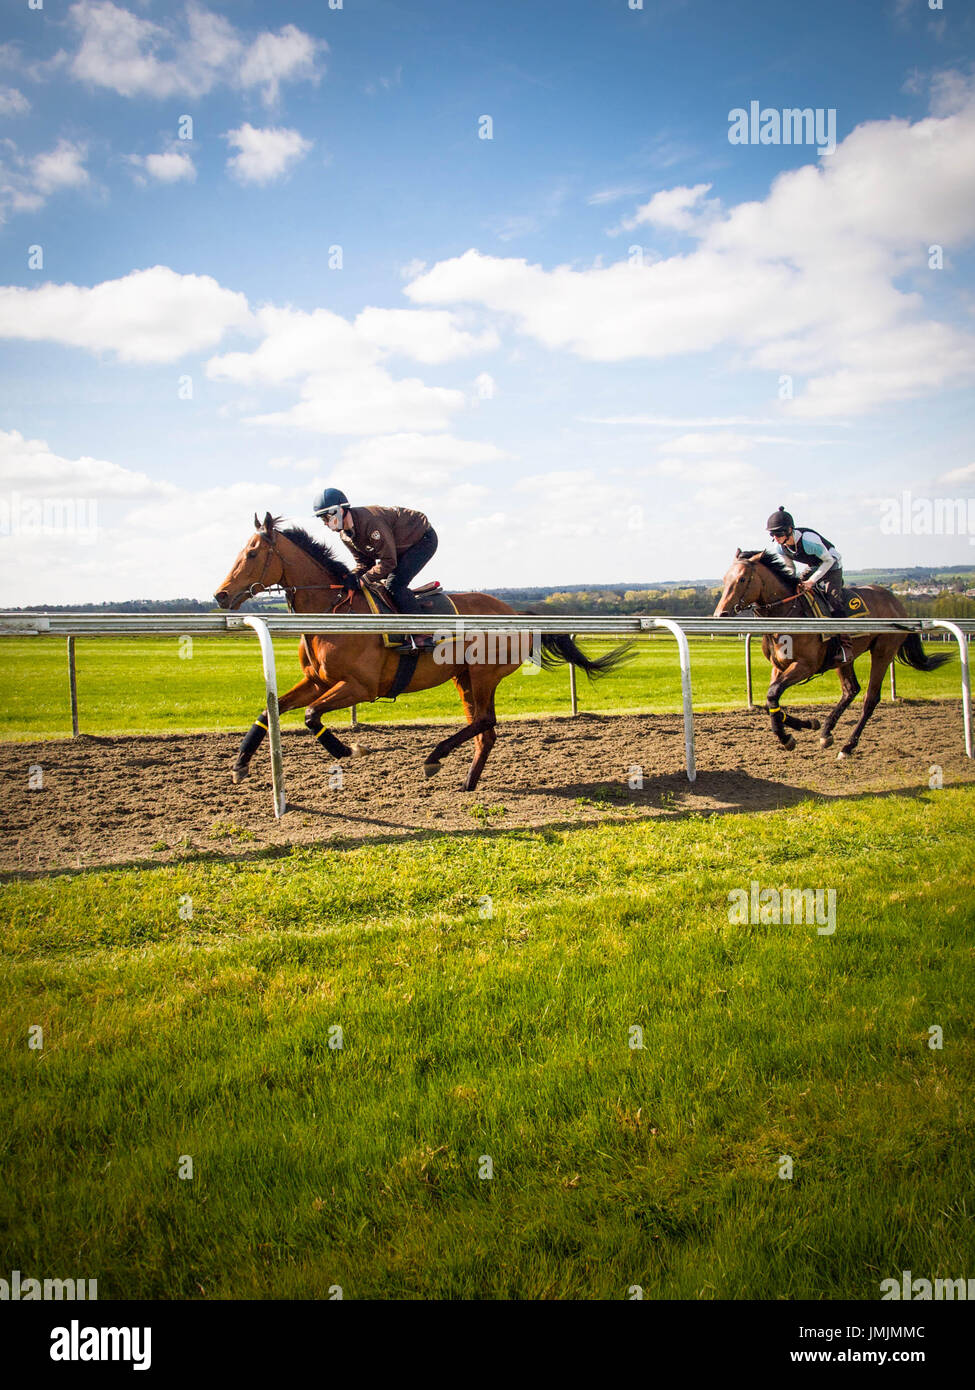 Thoroughbreds on Training Gallop at National Stud - Stock Image